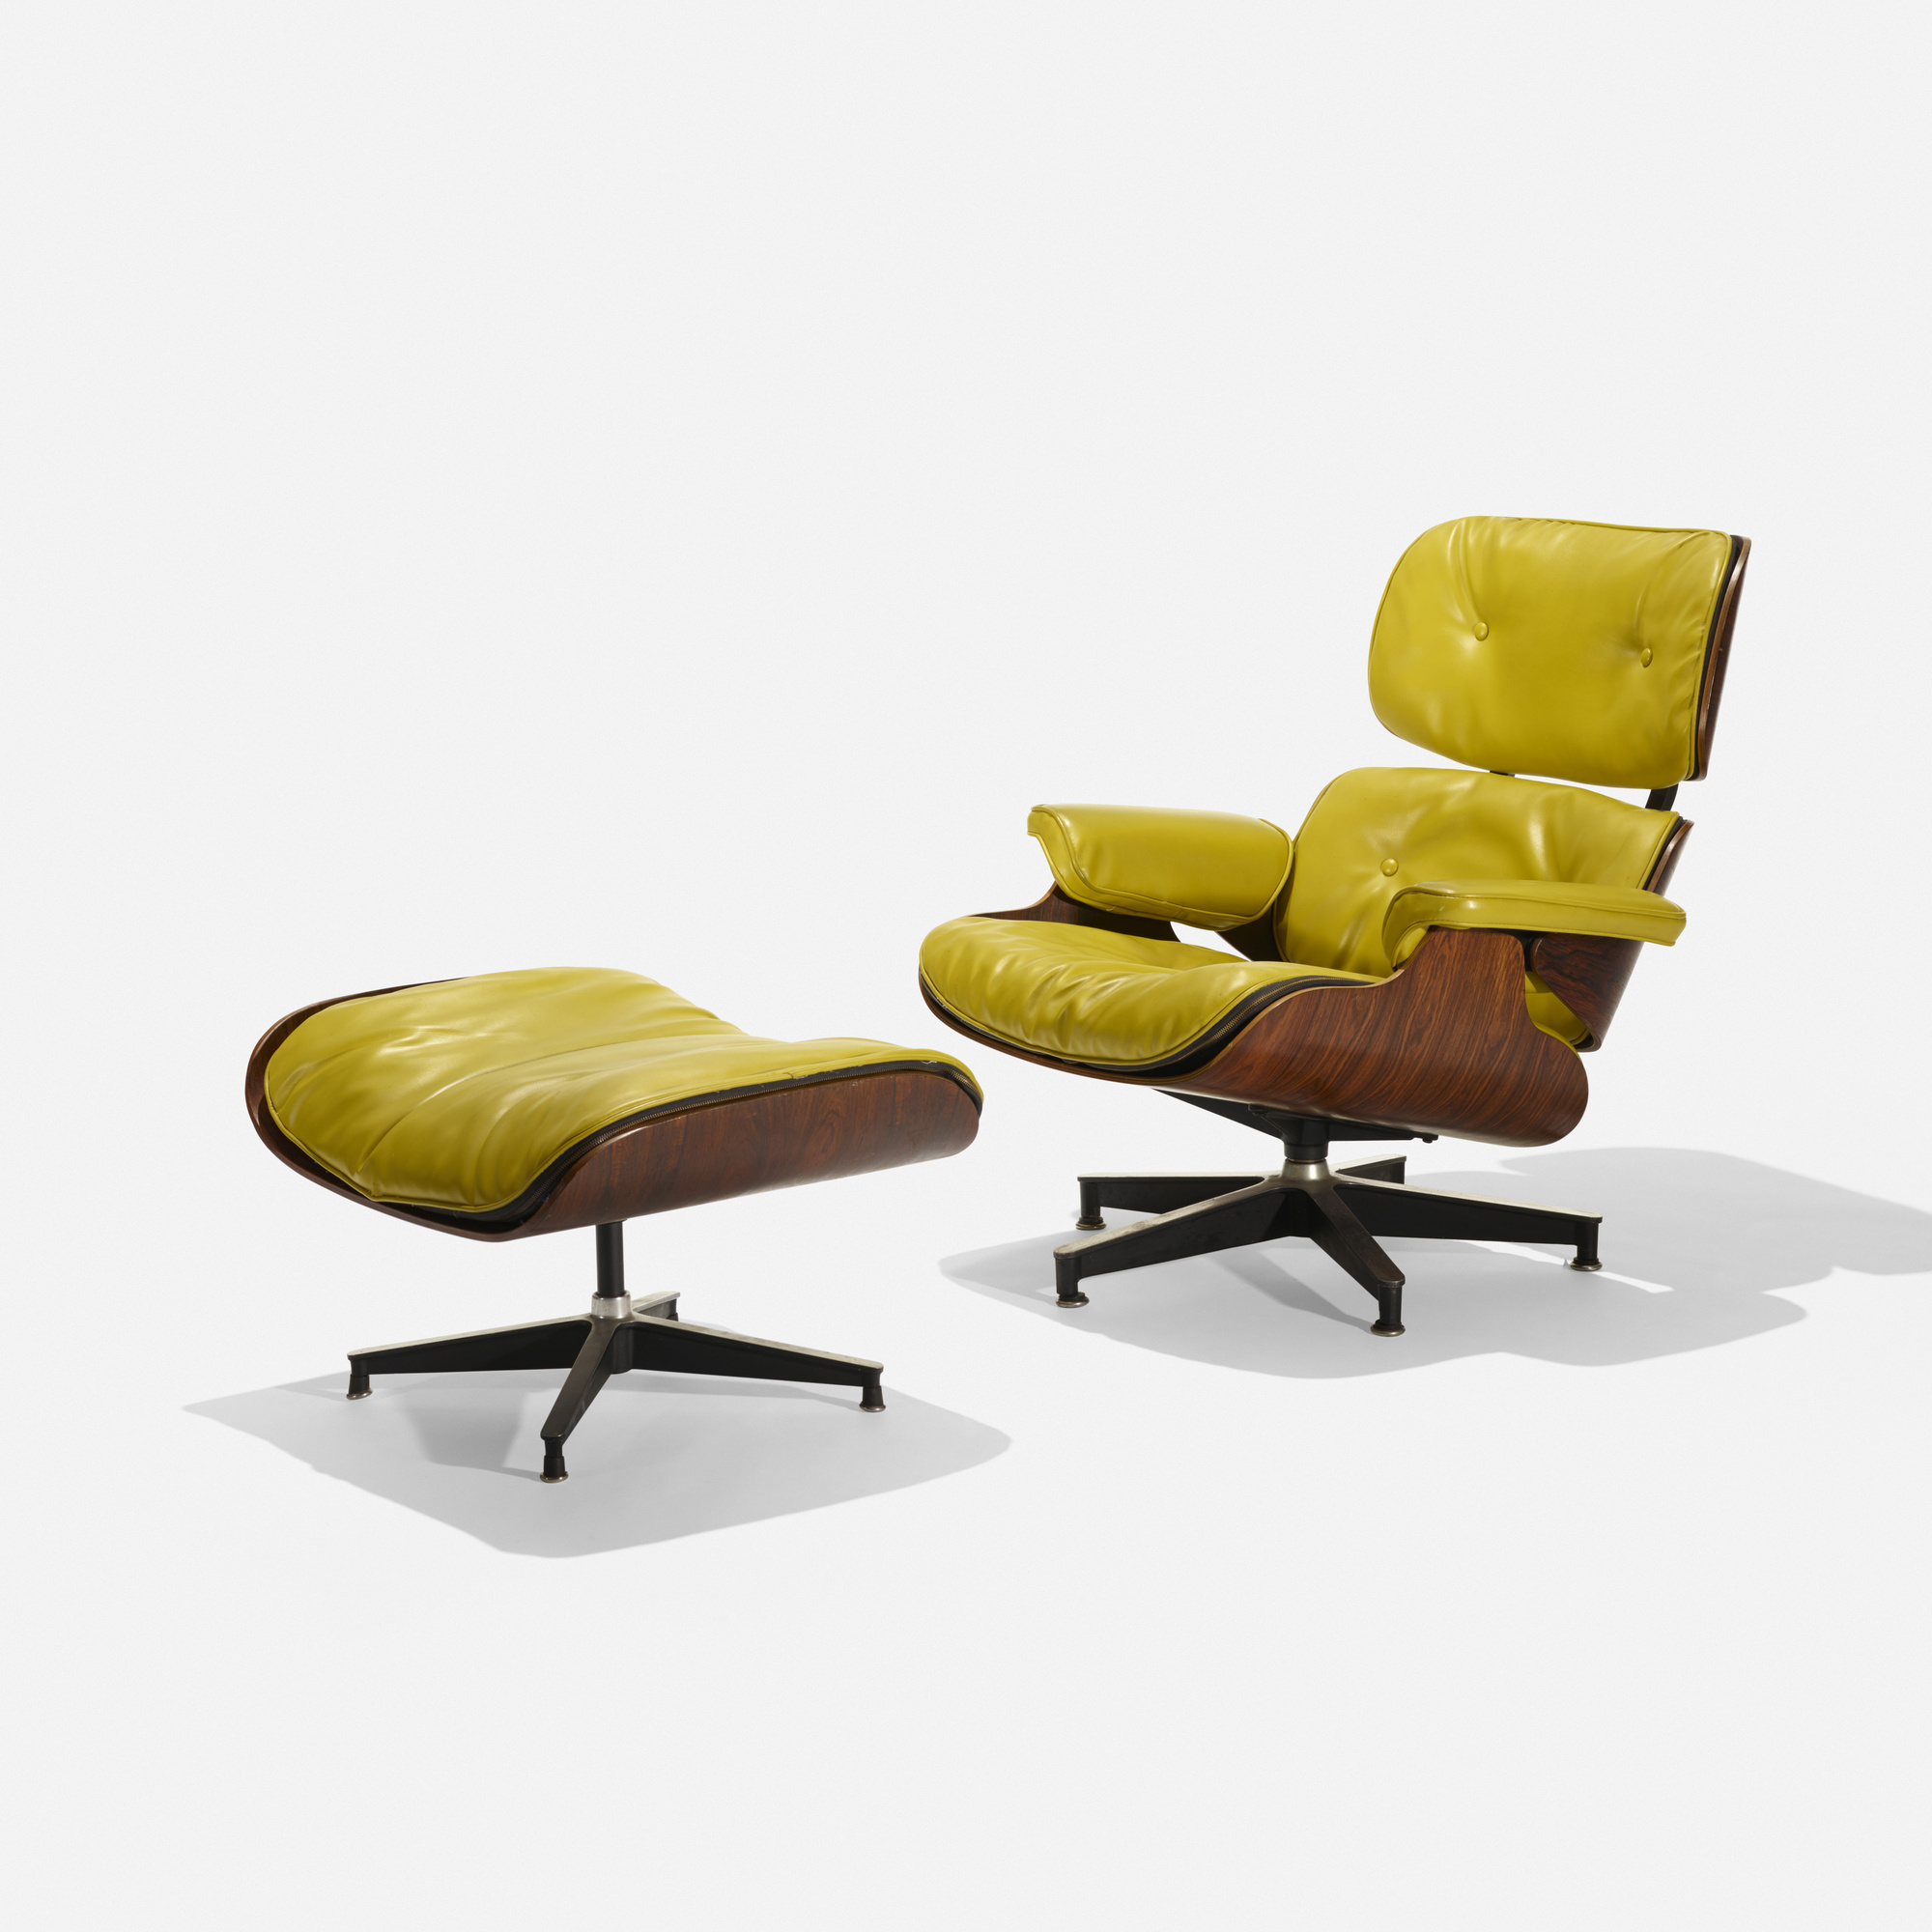 122: Charles and Ray Eames / special-order 670 lounge and 671 ottoman (1 of 3)